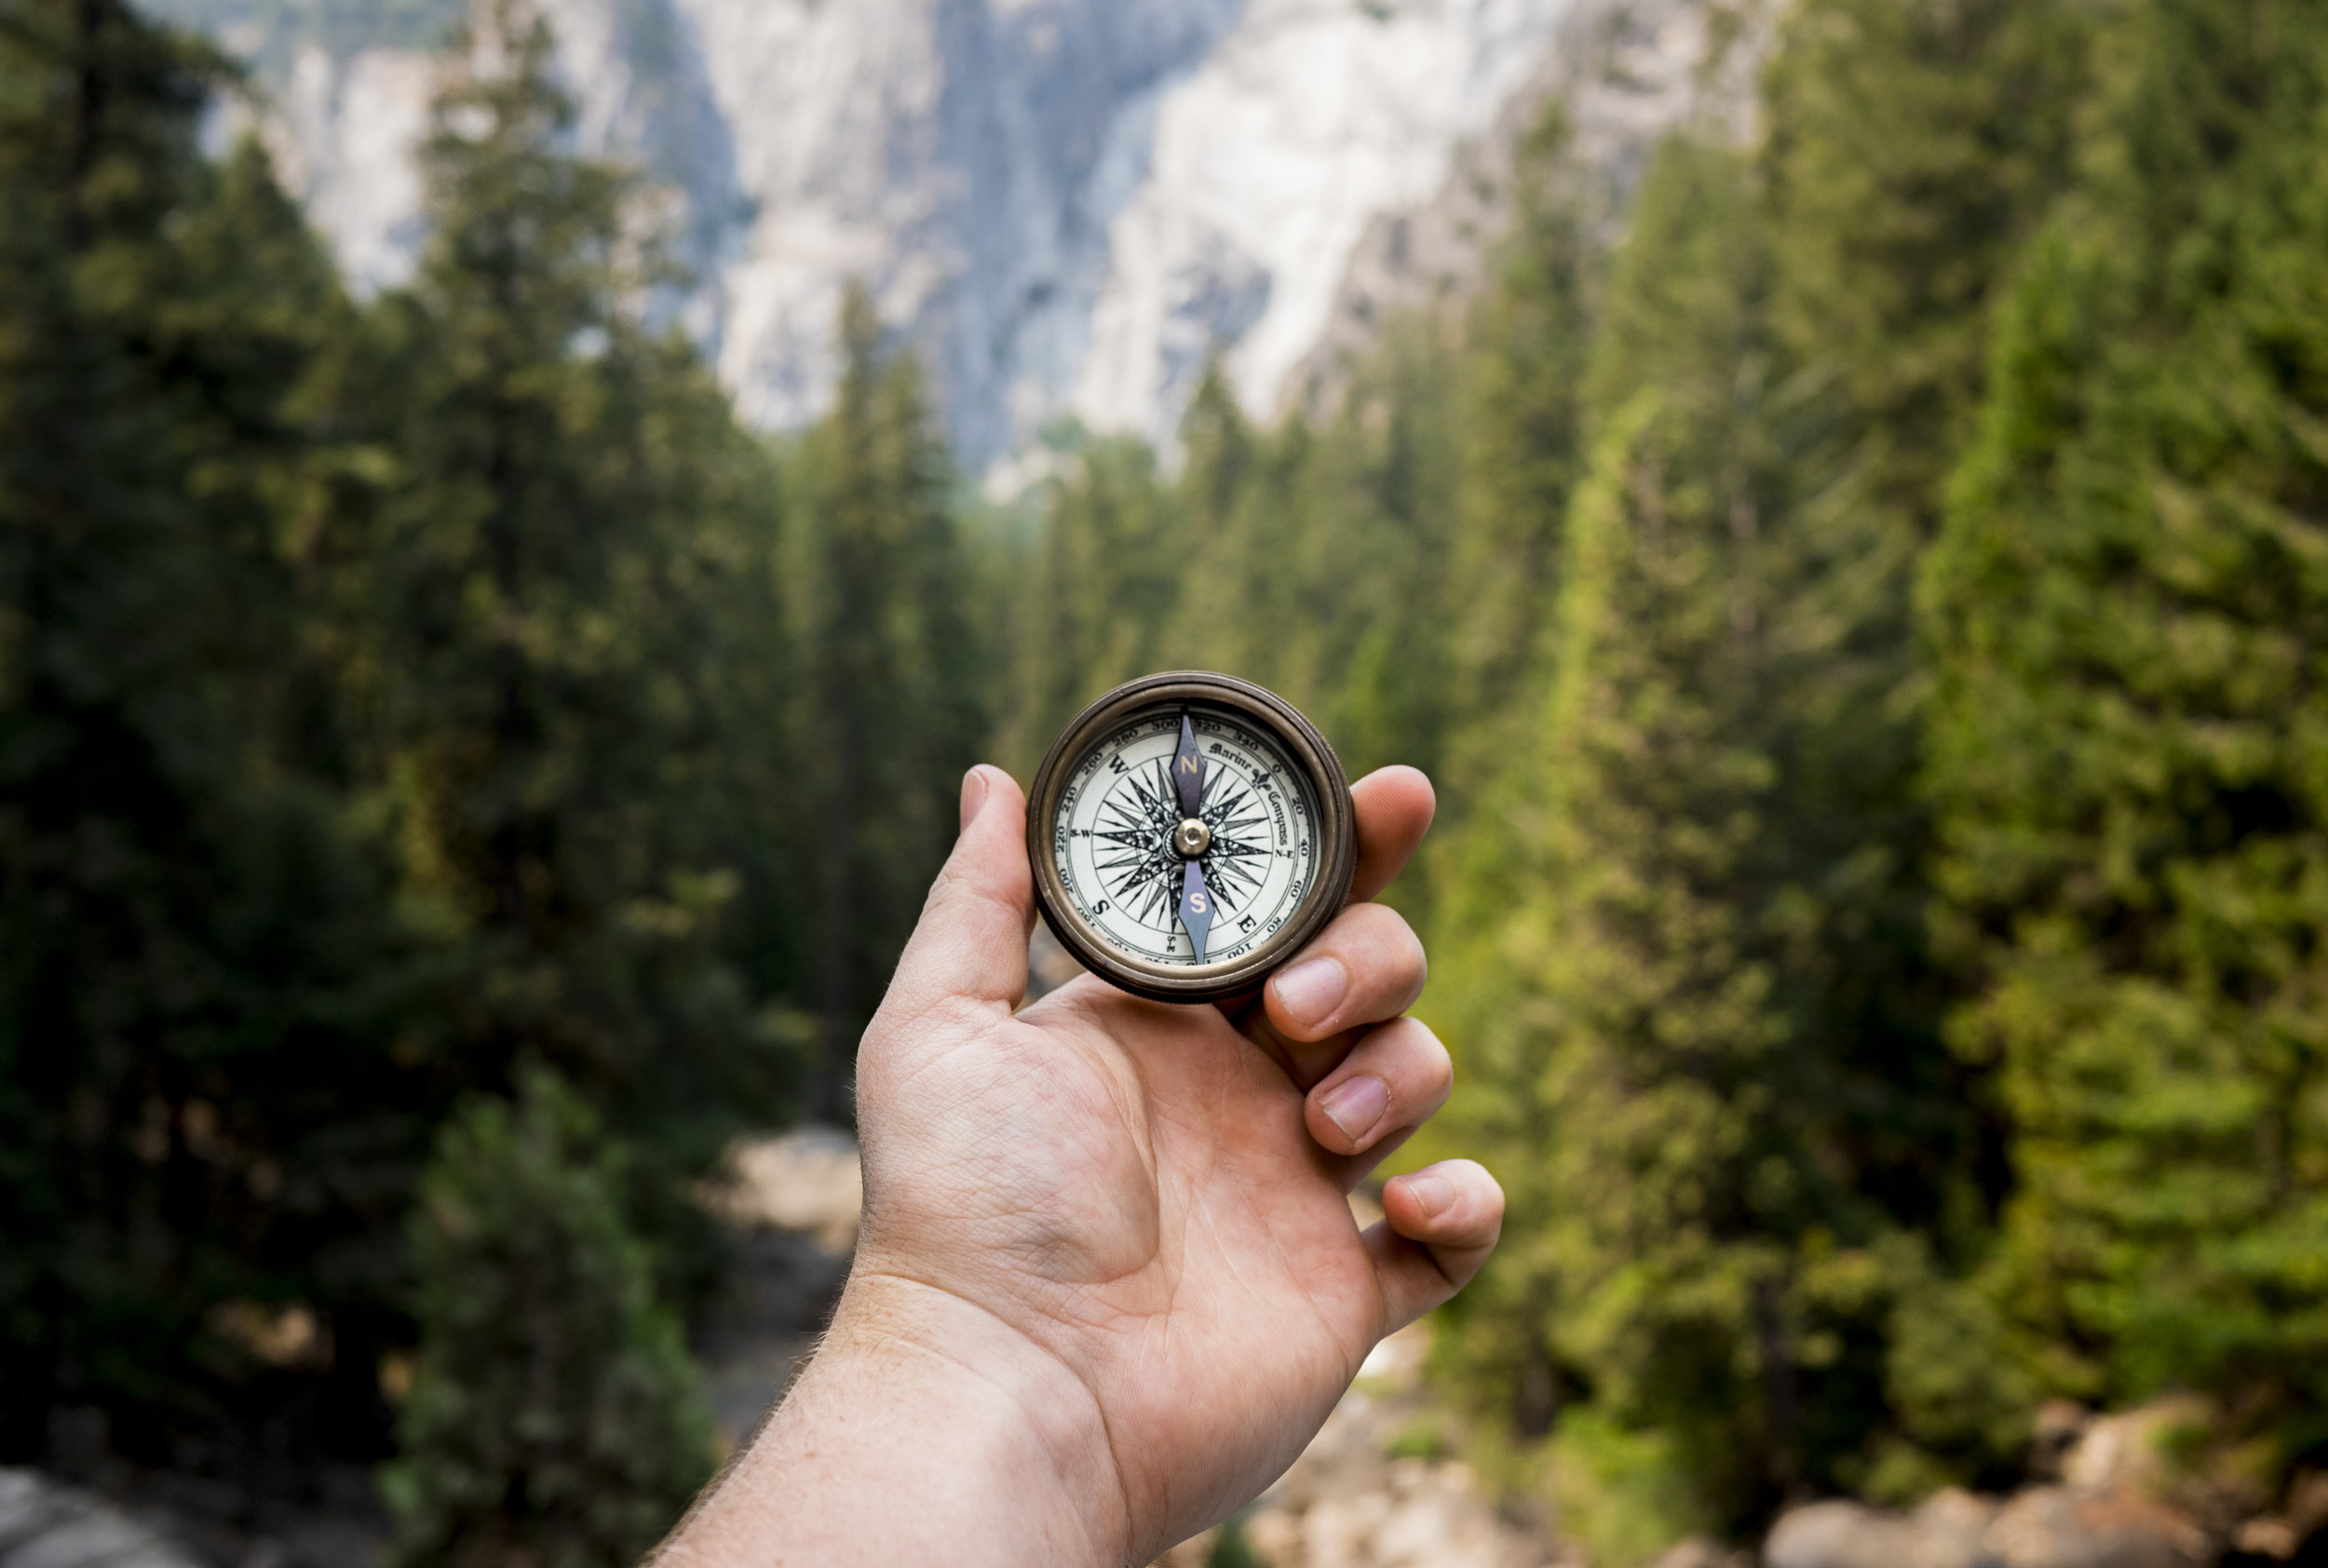 Looking at compass in a forest to determine North. The direction of any organisation needs to be shown by leadership and having a clearly defined direction.